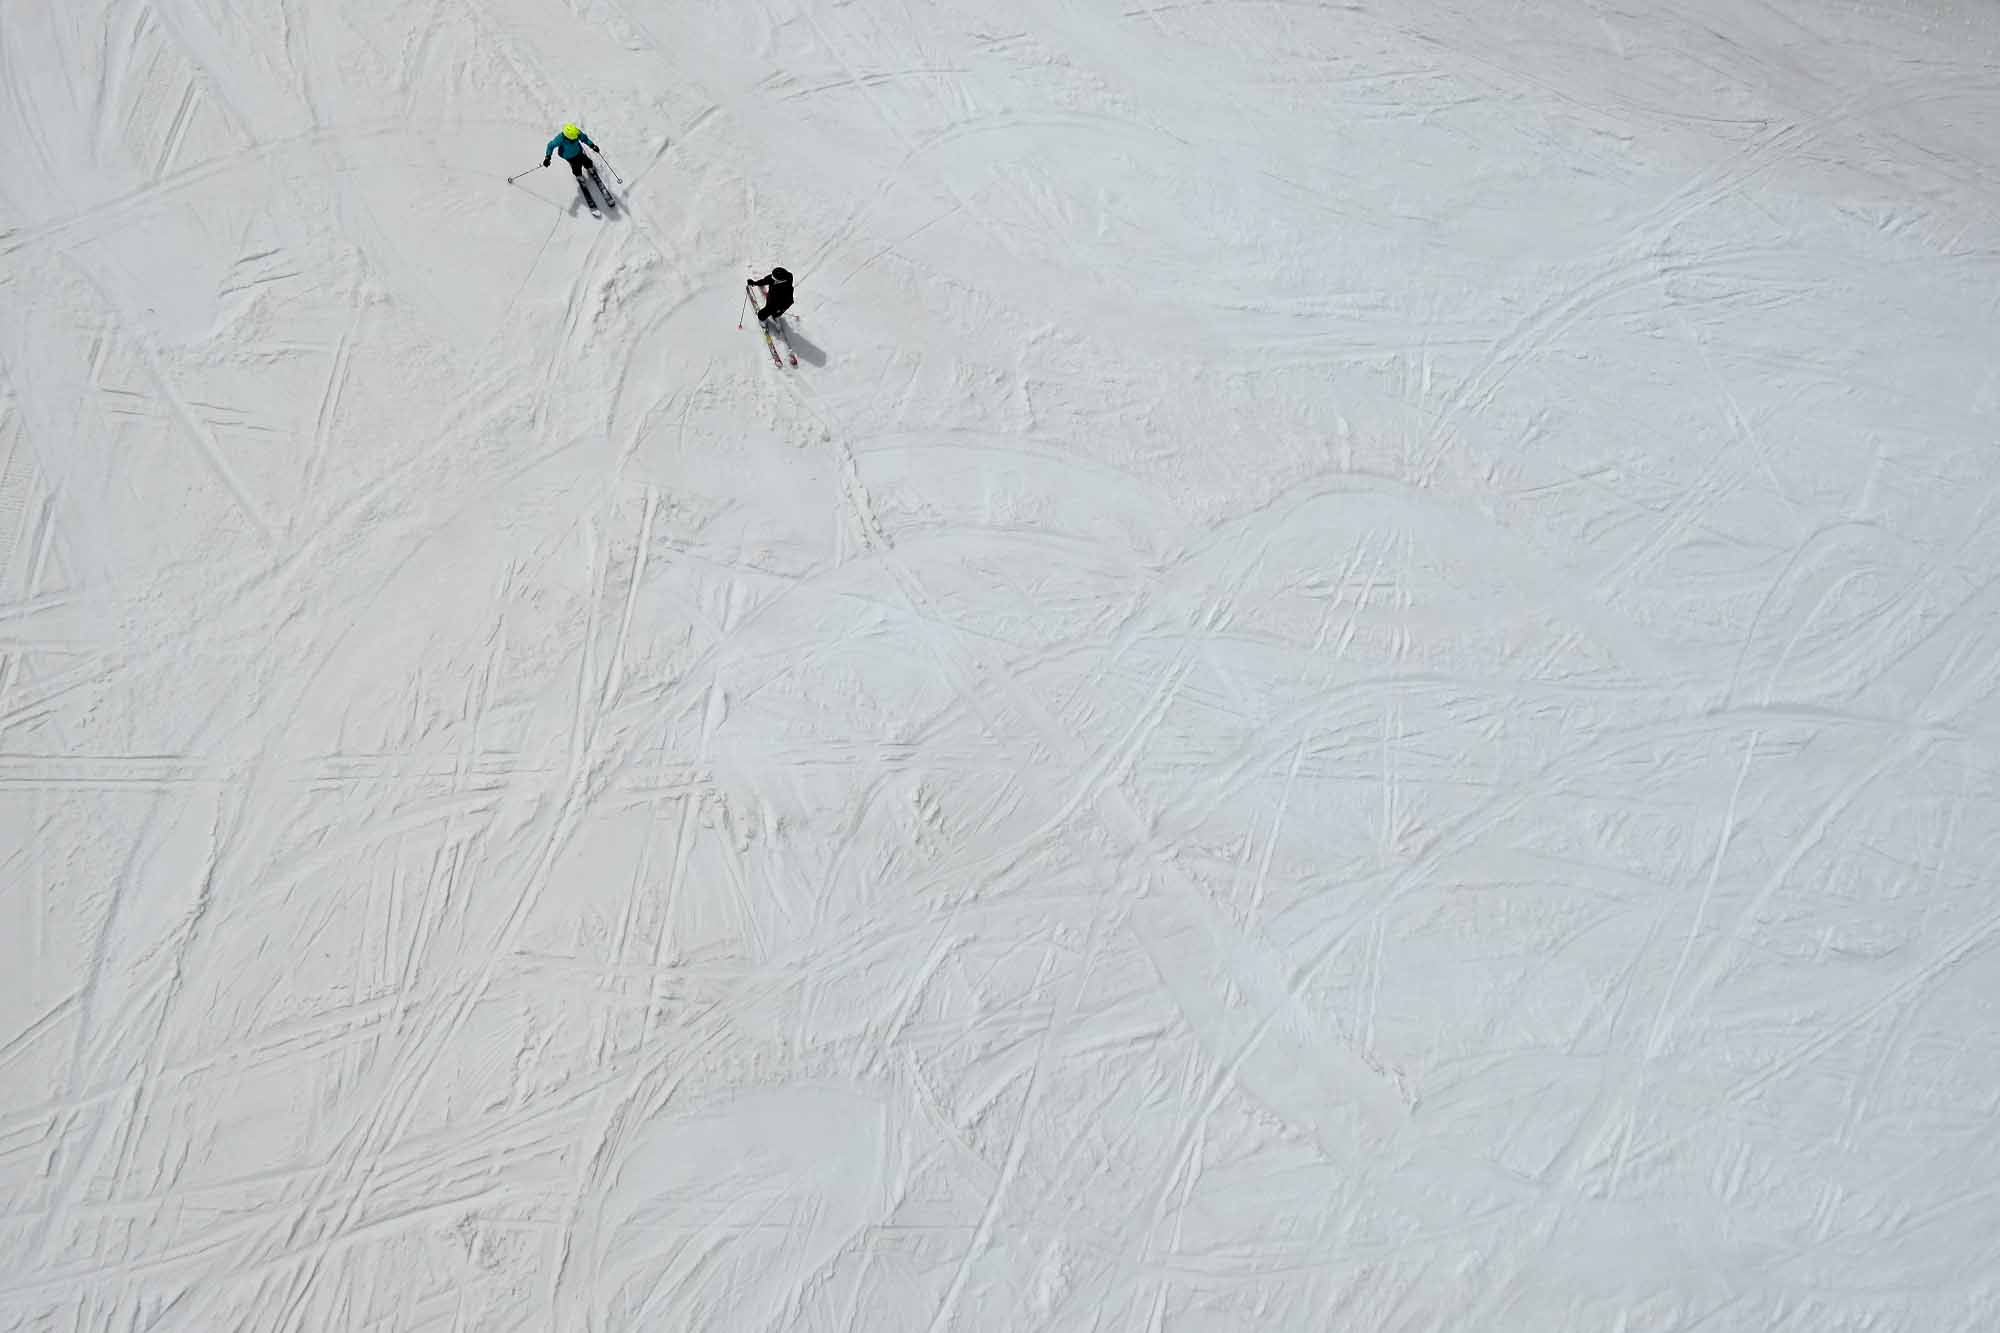 Two skiers have the slopes to themselves on Vail Mountain in Vail, Colo. at the end of the ski season on Friday, April 18, 2014.